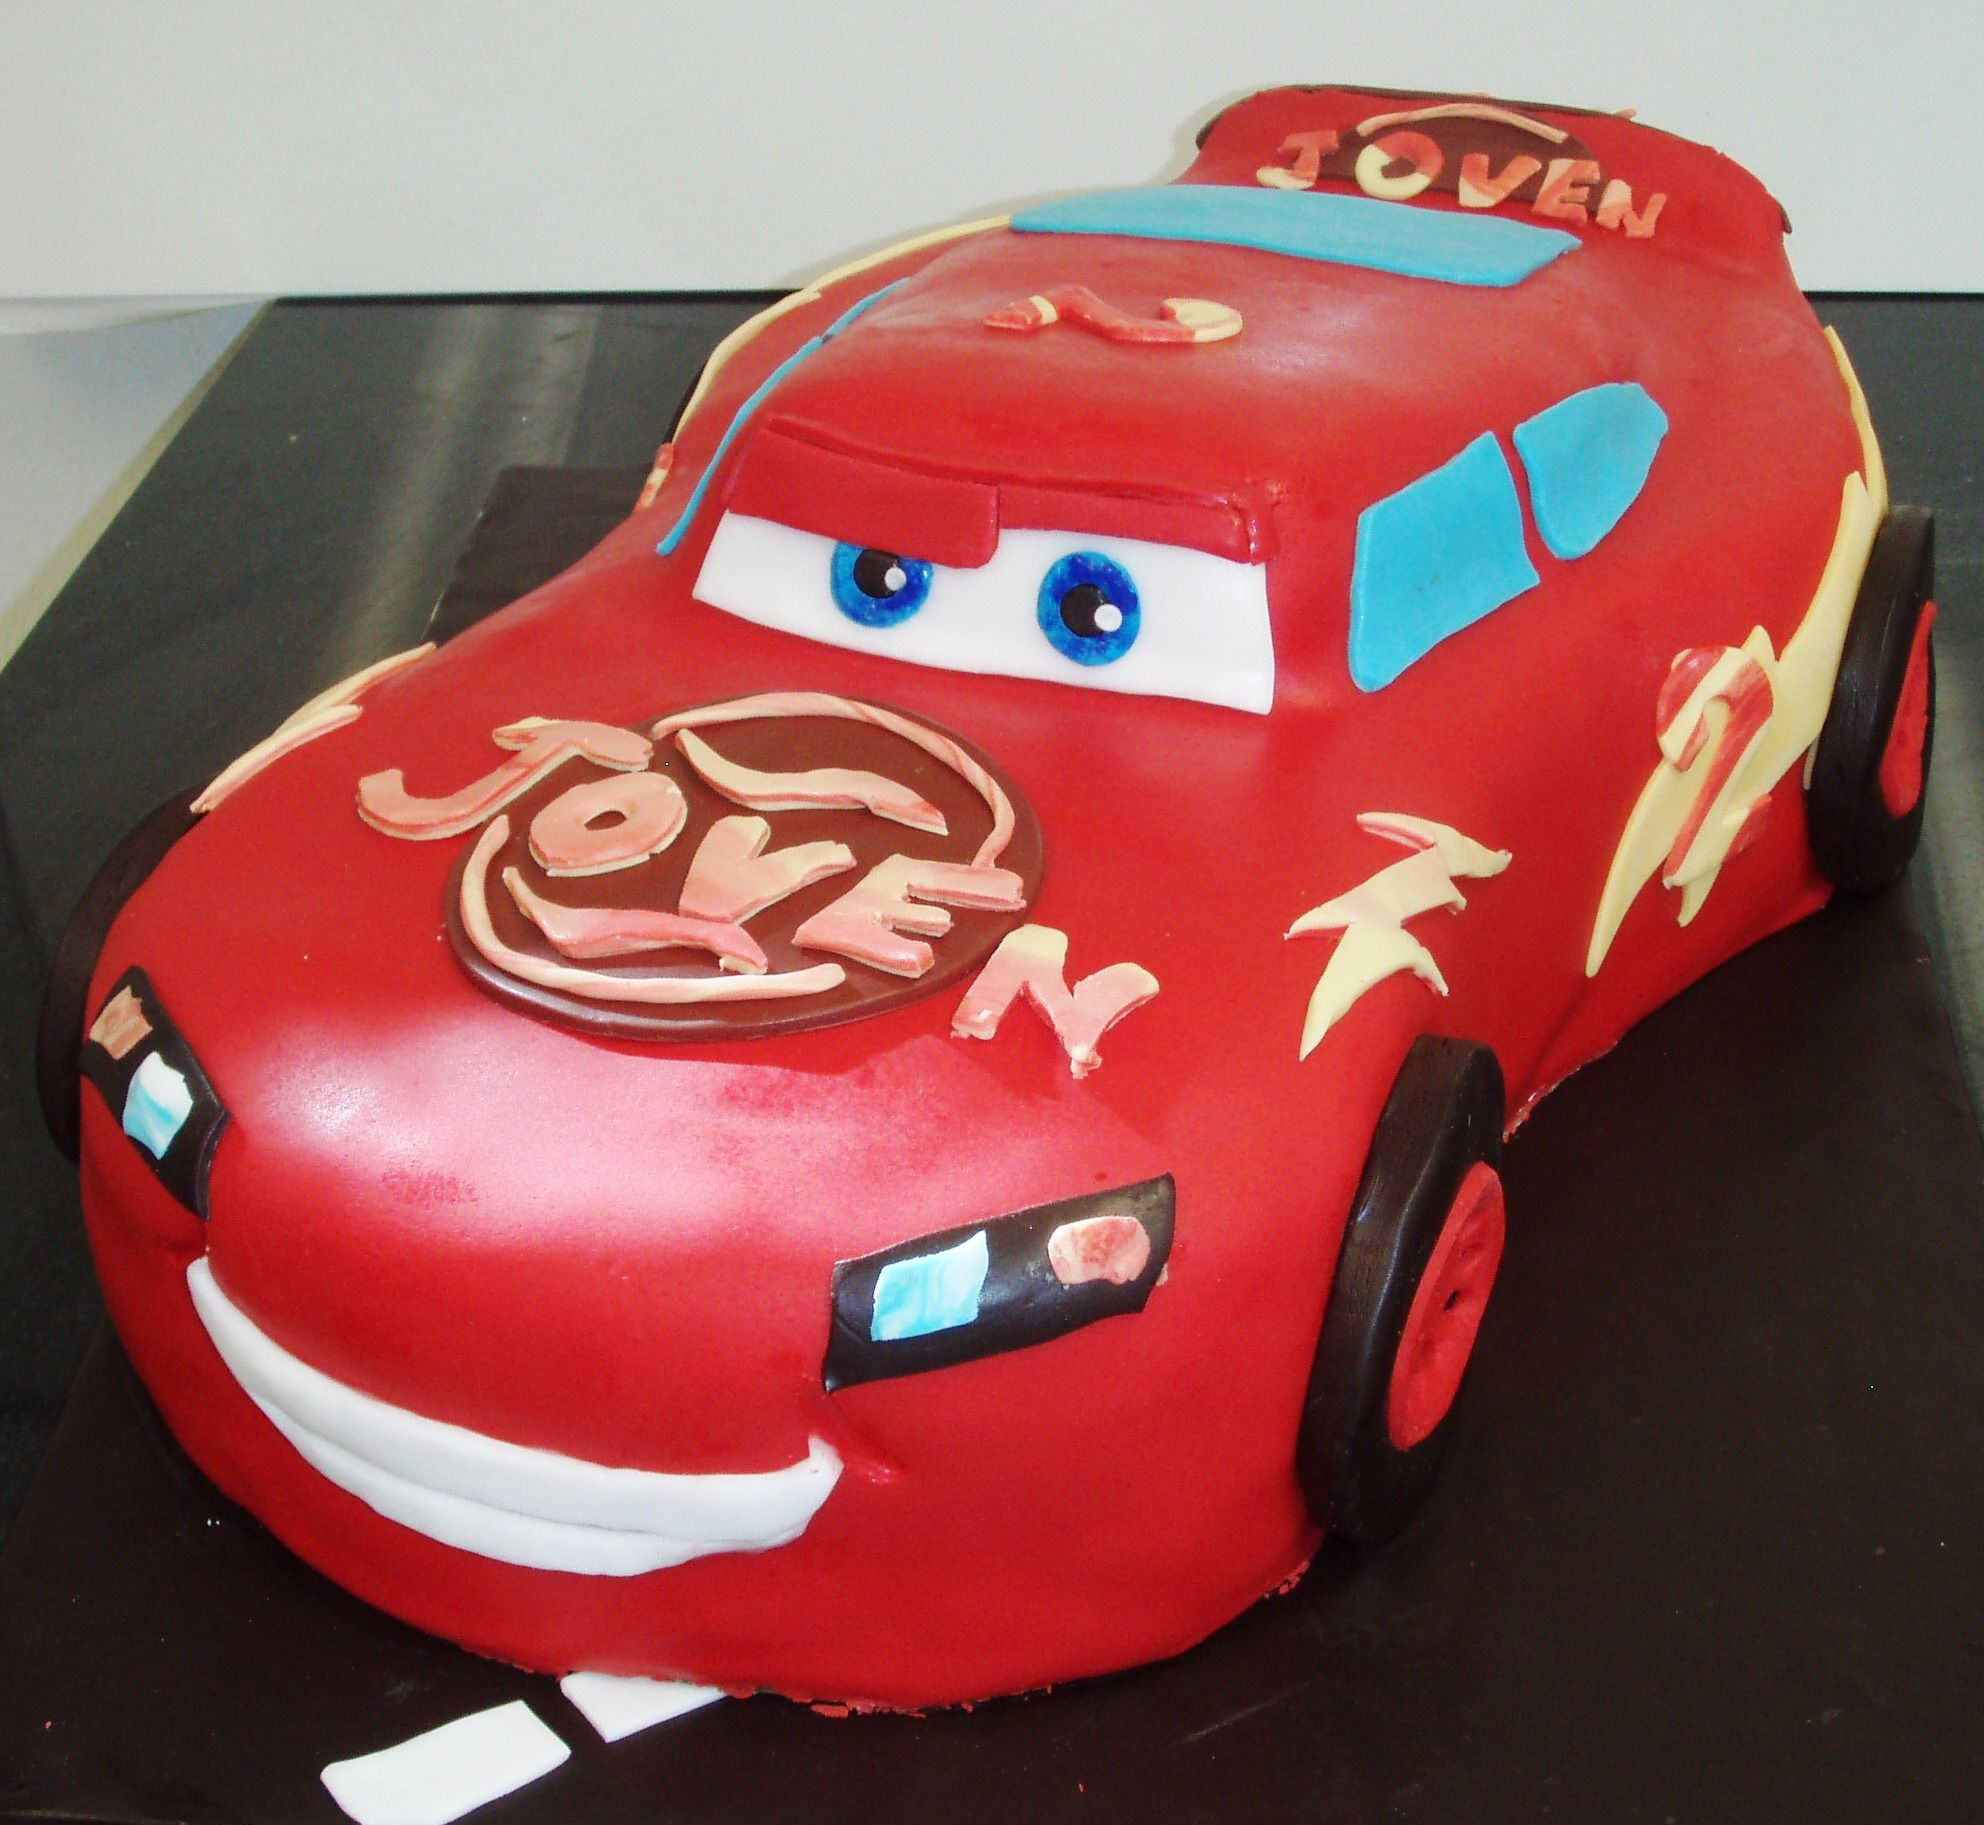 All about Cars Good looking Flash McQueen cake for a special